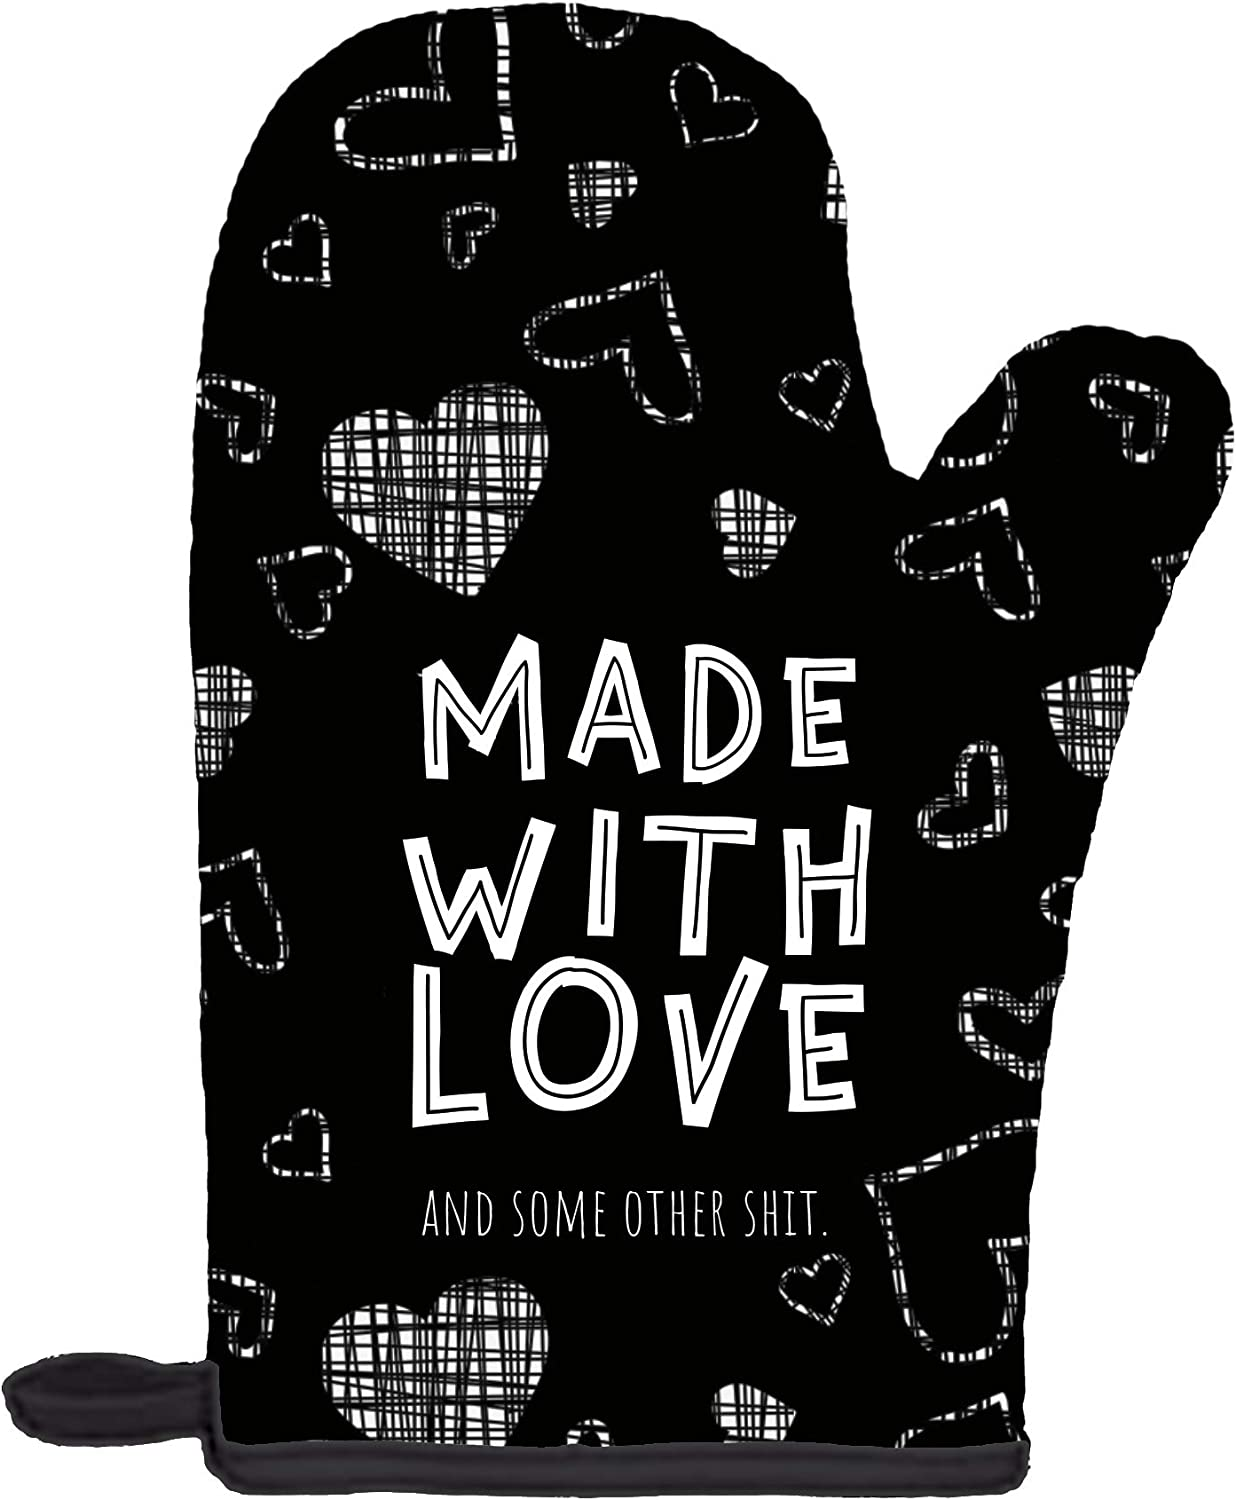 Twisted Wares Oven Mitt - Made with Love and Some Other Shit - Funny Pot Holder, Heat Resistant Glove - Black